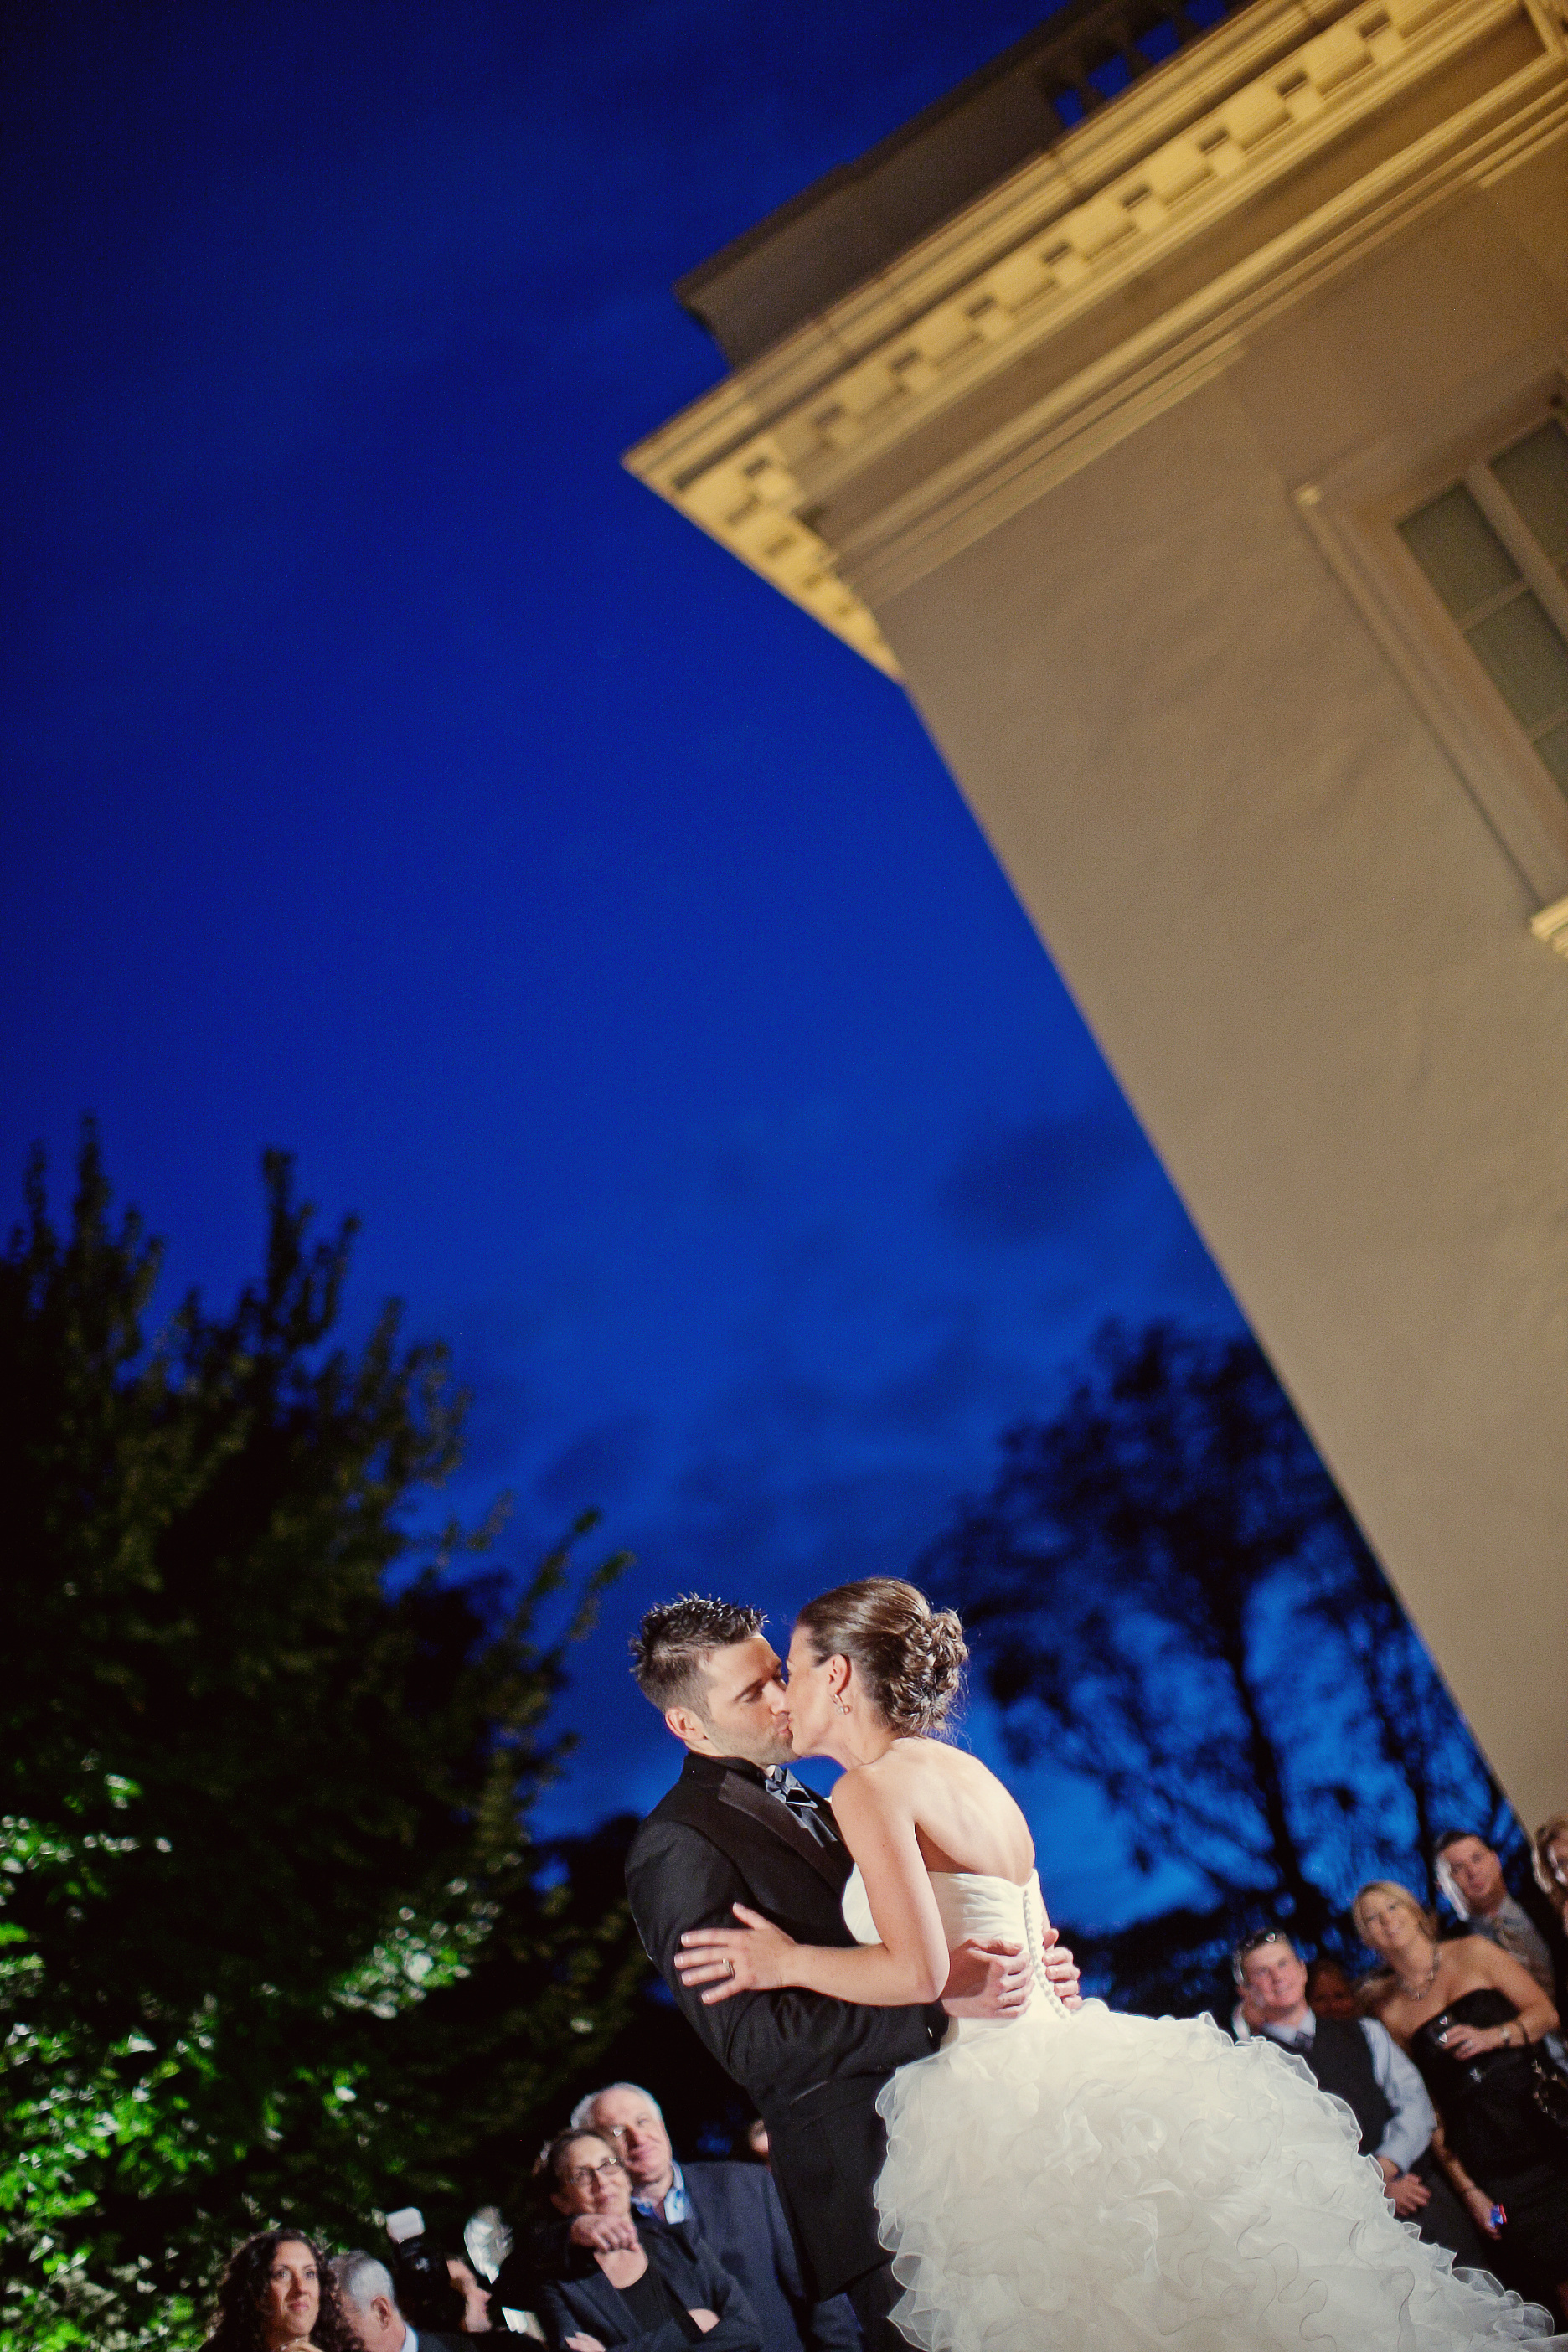 NYC-Wedding-Planner-Andrea-Freeman-Events-Wadsworth-Mansion-CT-17.jpg